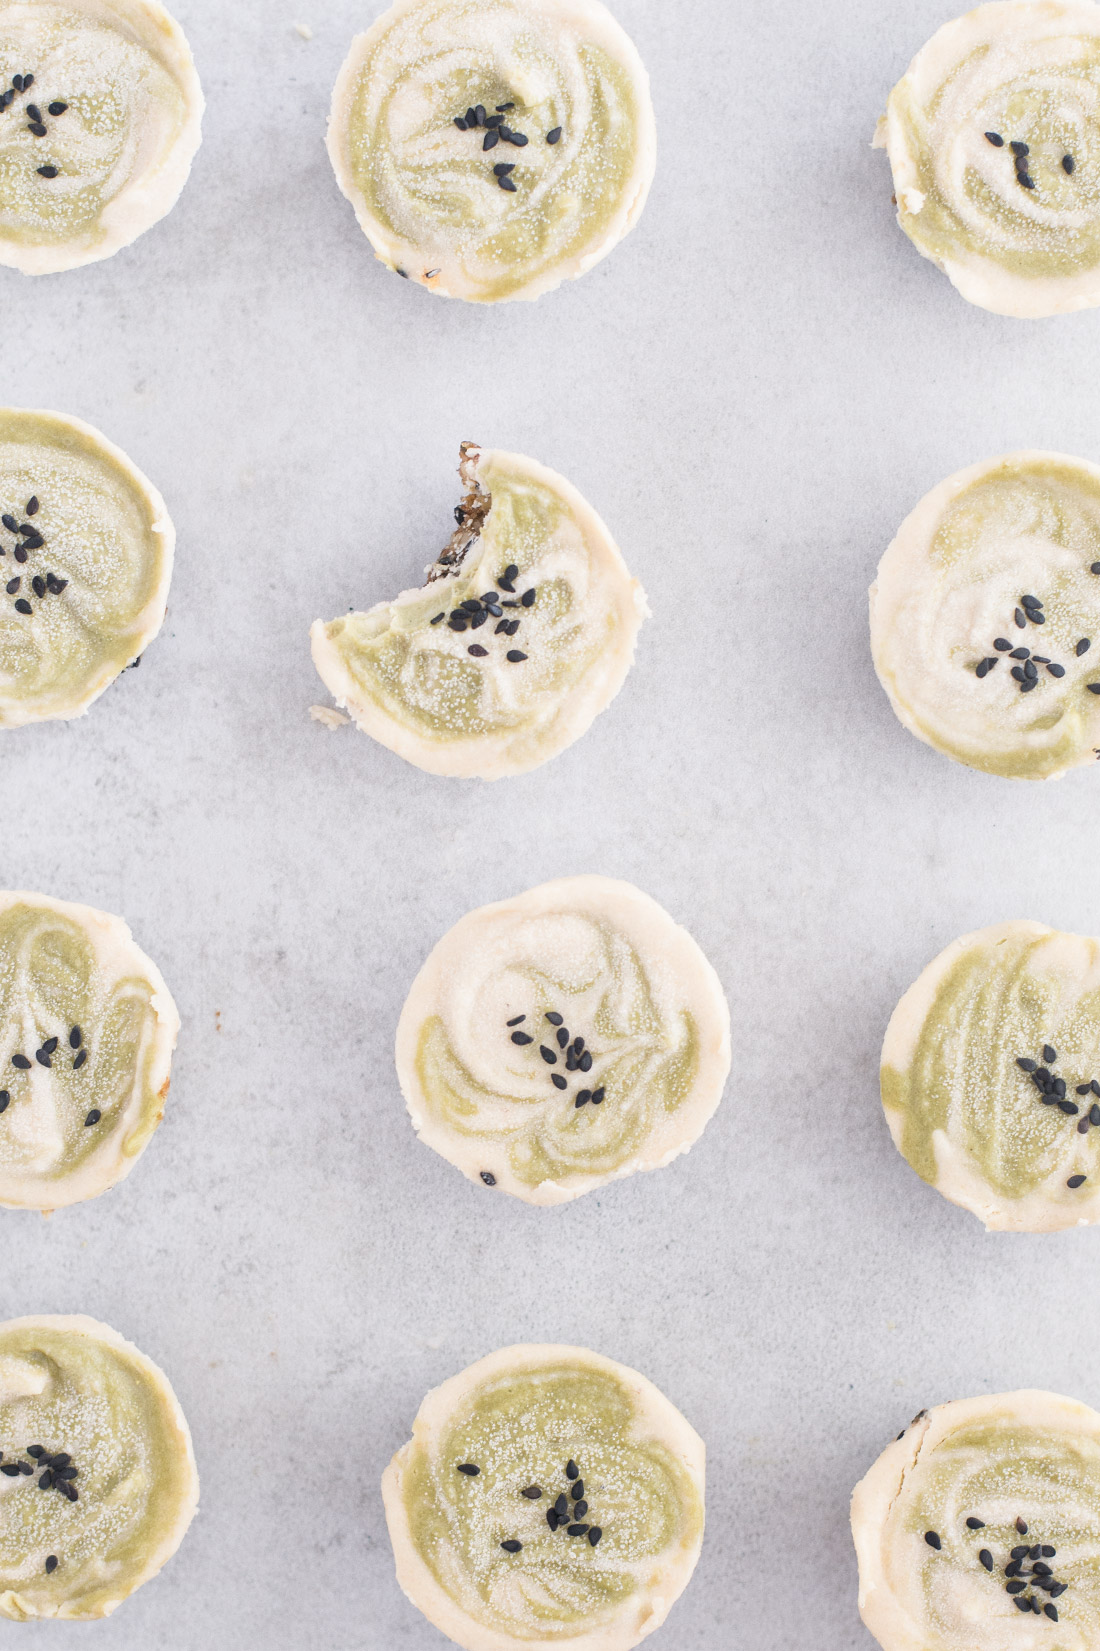 Black Sesame Matcha Raw Cheesecake Bites -- Raw vegan cheesecake is the perfect bite sized treat that taste delicious and are GOOD for you. Cashews, dates, sesame seeds, and real matcha powder are some of the star ingredients in this healthy dessert recipe. | mindfulavocado